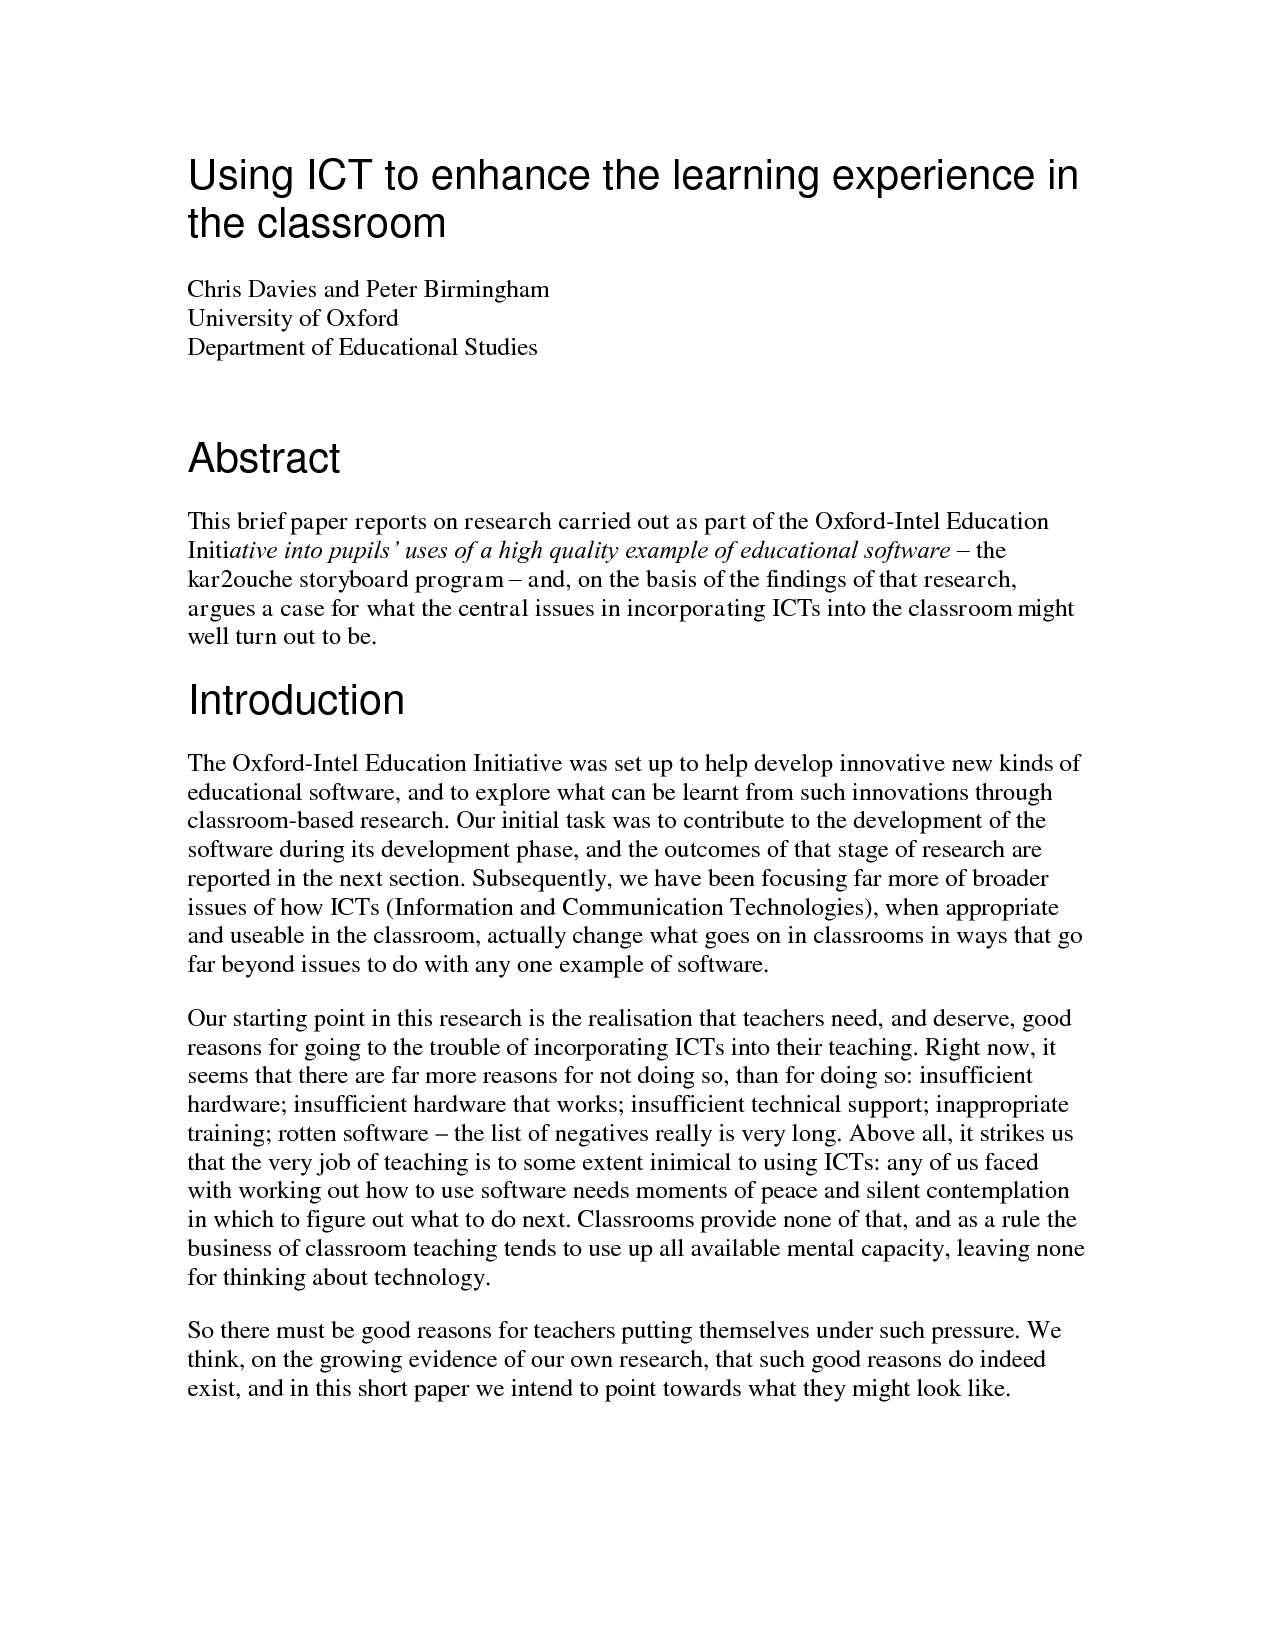 Essay Abstract Example